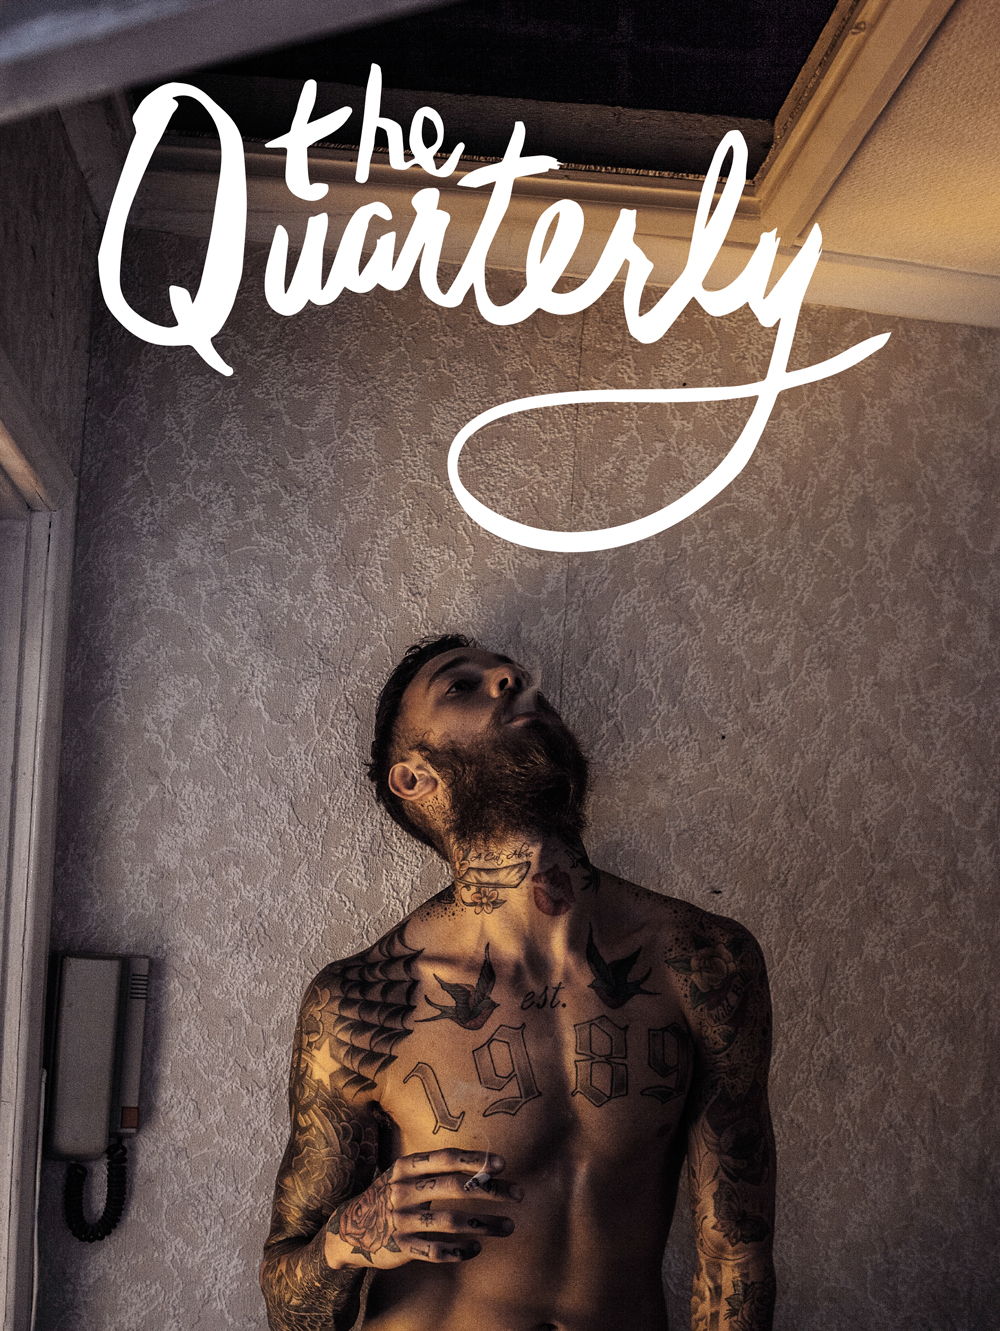 The Quarterly, Issue 2: Life and Culture   Featuring photography from Maud Chalard, Sharon Kim, Roo Lewis, ANTON, Mark Ivkovic, Annie Ling, Tom Johnson, Tim Hans, Nick Onken, Marc Pritchard, and writing from Naeem Alvi, Jace Kim, Christian Coleman, Stephen Dowling, Errol Clarke, Ivana McConnell, Noo Ridings, Alena Walker, Patrick McCullough. 144 Pages, 250mm x 190mm No adverts. No filler. Creativity without the Exploitation.